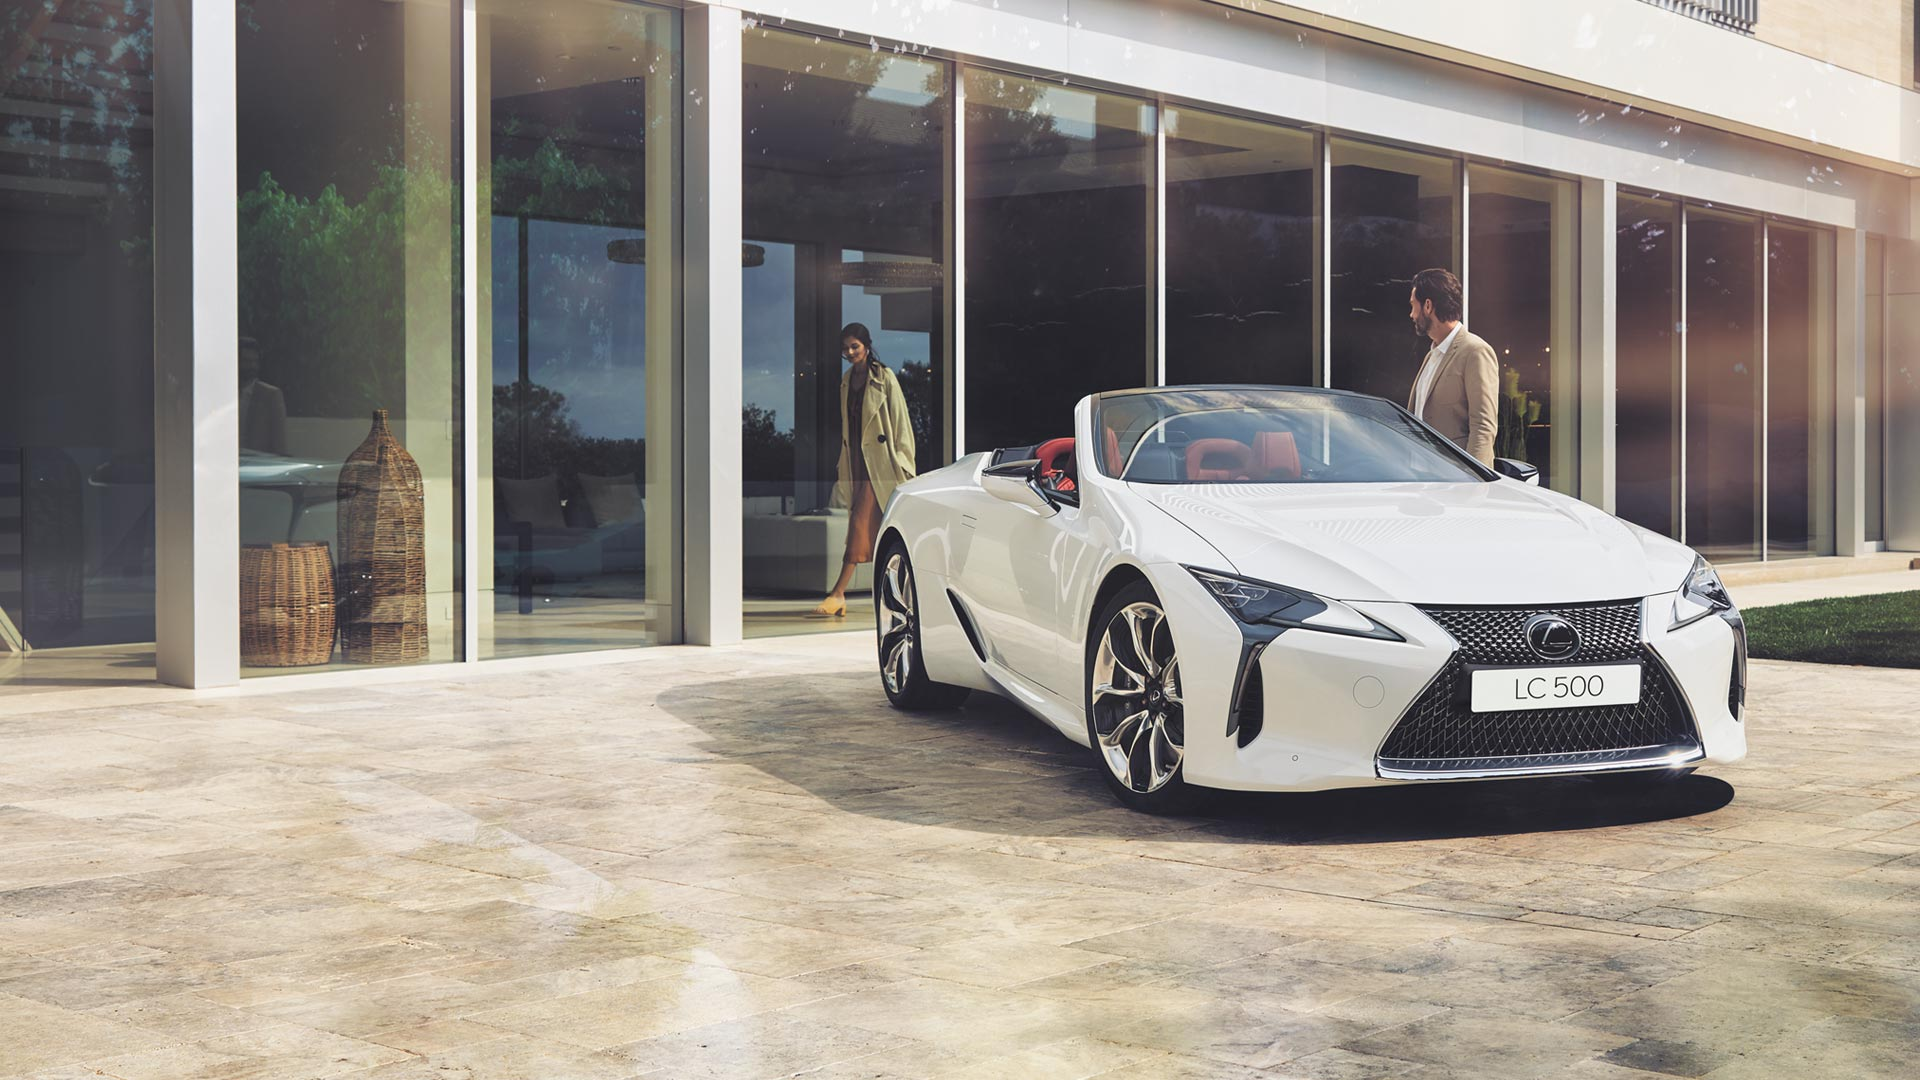 lexus latest offers dealer hero 21 1920x1080px 3